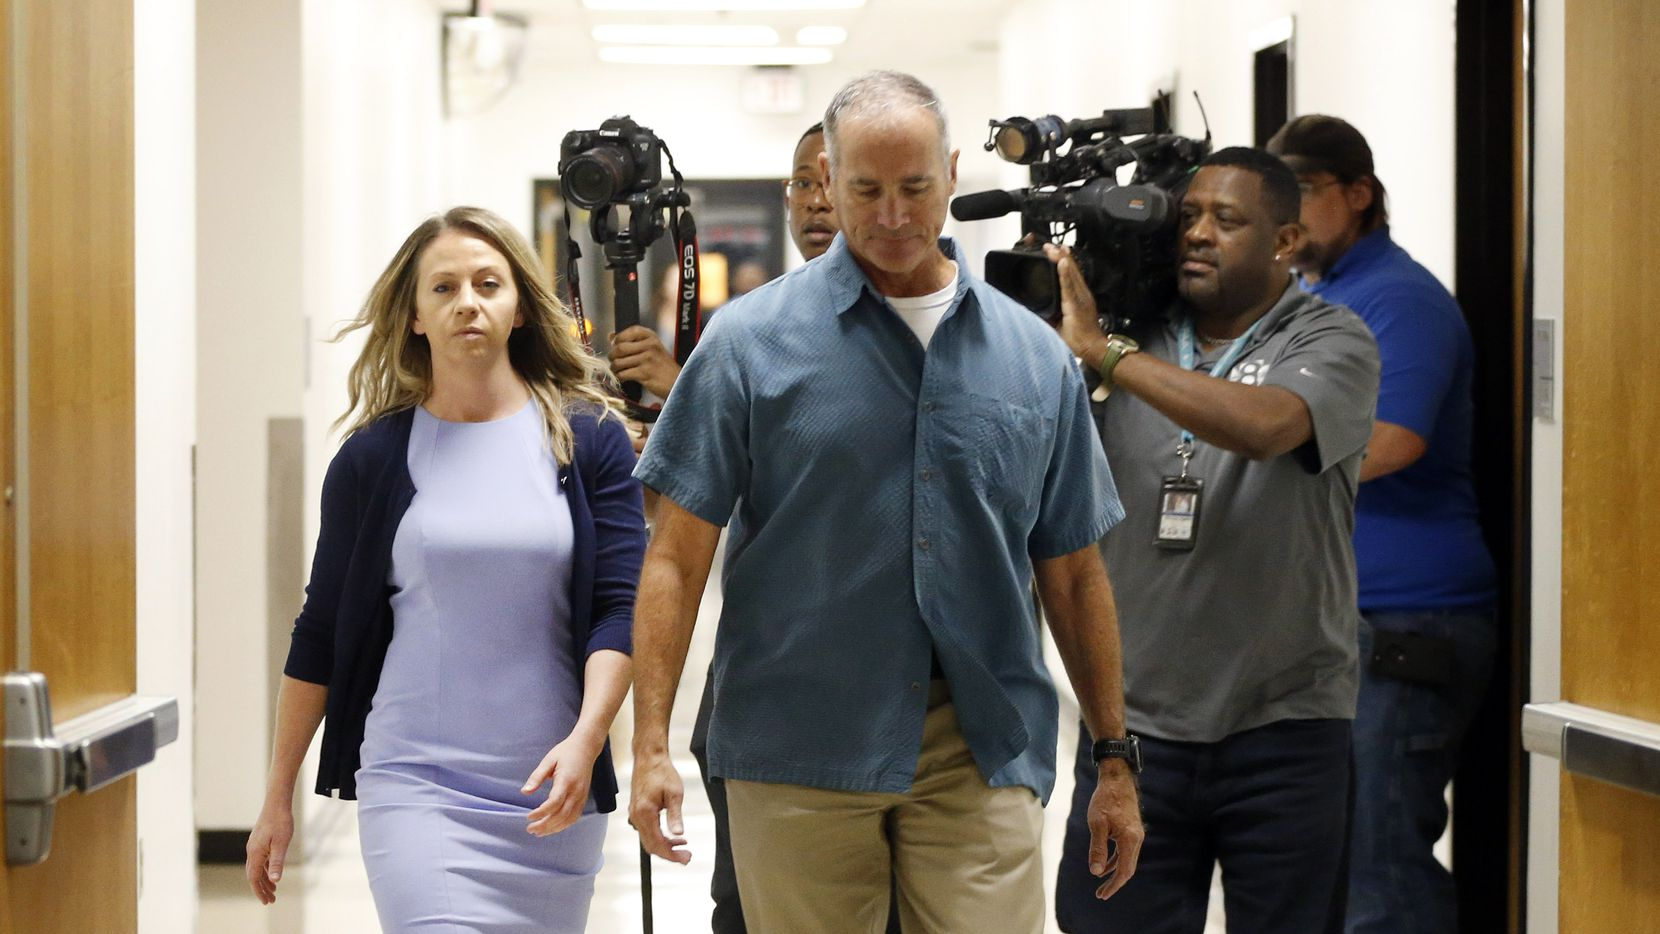 Fired Dallas police Officer Amber Guyger (left) arrives for a pretrial hearing in her murder trial at the Frank Crowley Courthouse in downtown Dallas, Monday, September 16, 2019. Guyger shot and killing Botham Jean, an unarmed man in his own apartment last year. (Tom Fox/The Dallas Morning News)